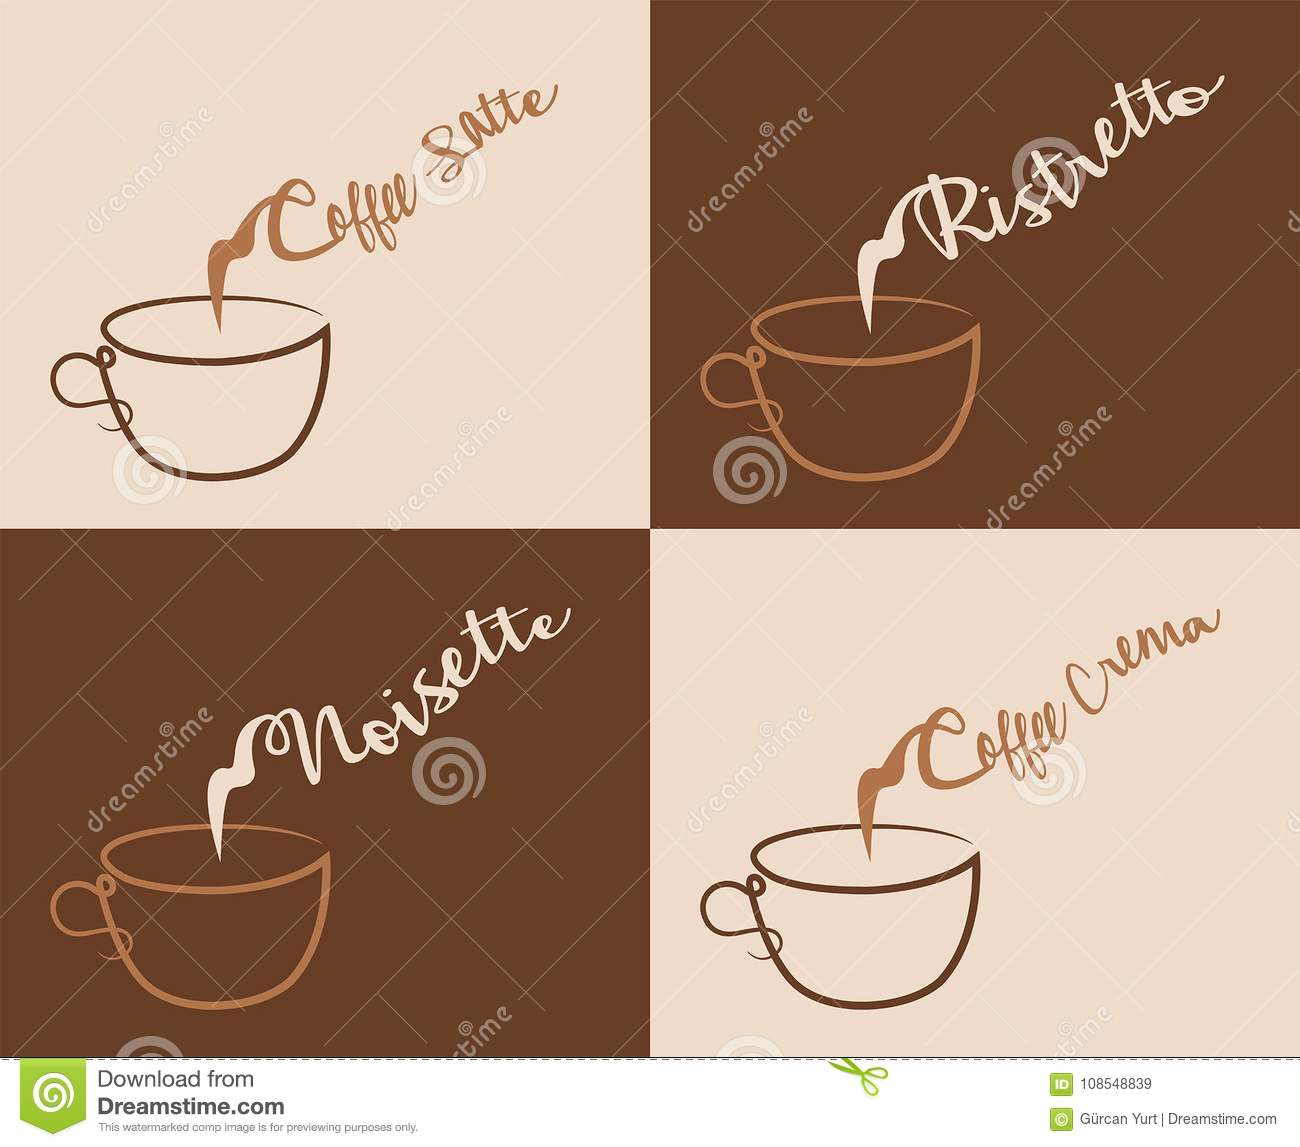 1348c5bcf383 Coffee Cream and Other Coffee Types With Steam. Four different coffee text  types did converted to outlines and don t need any fonts.